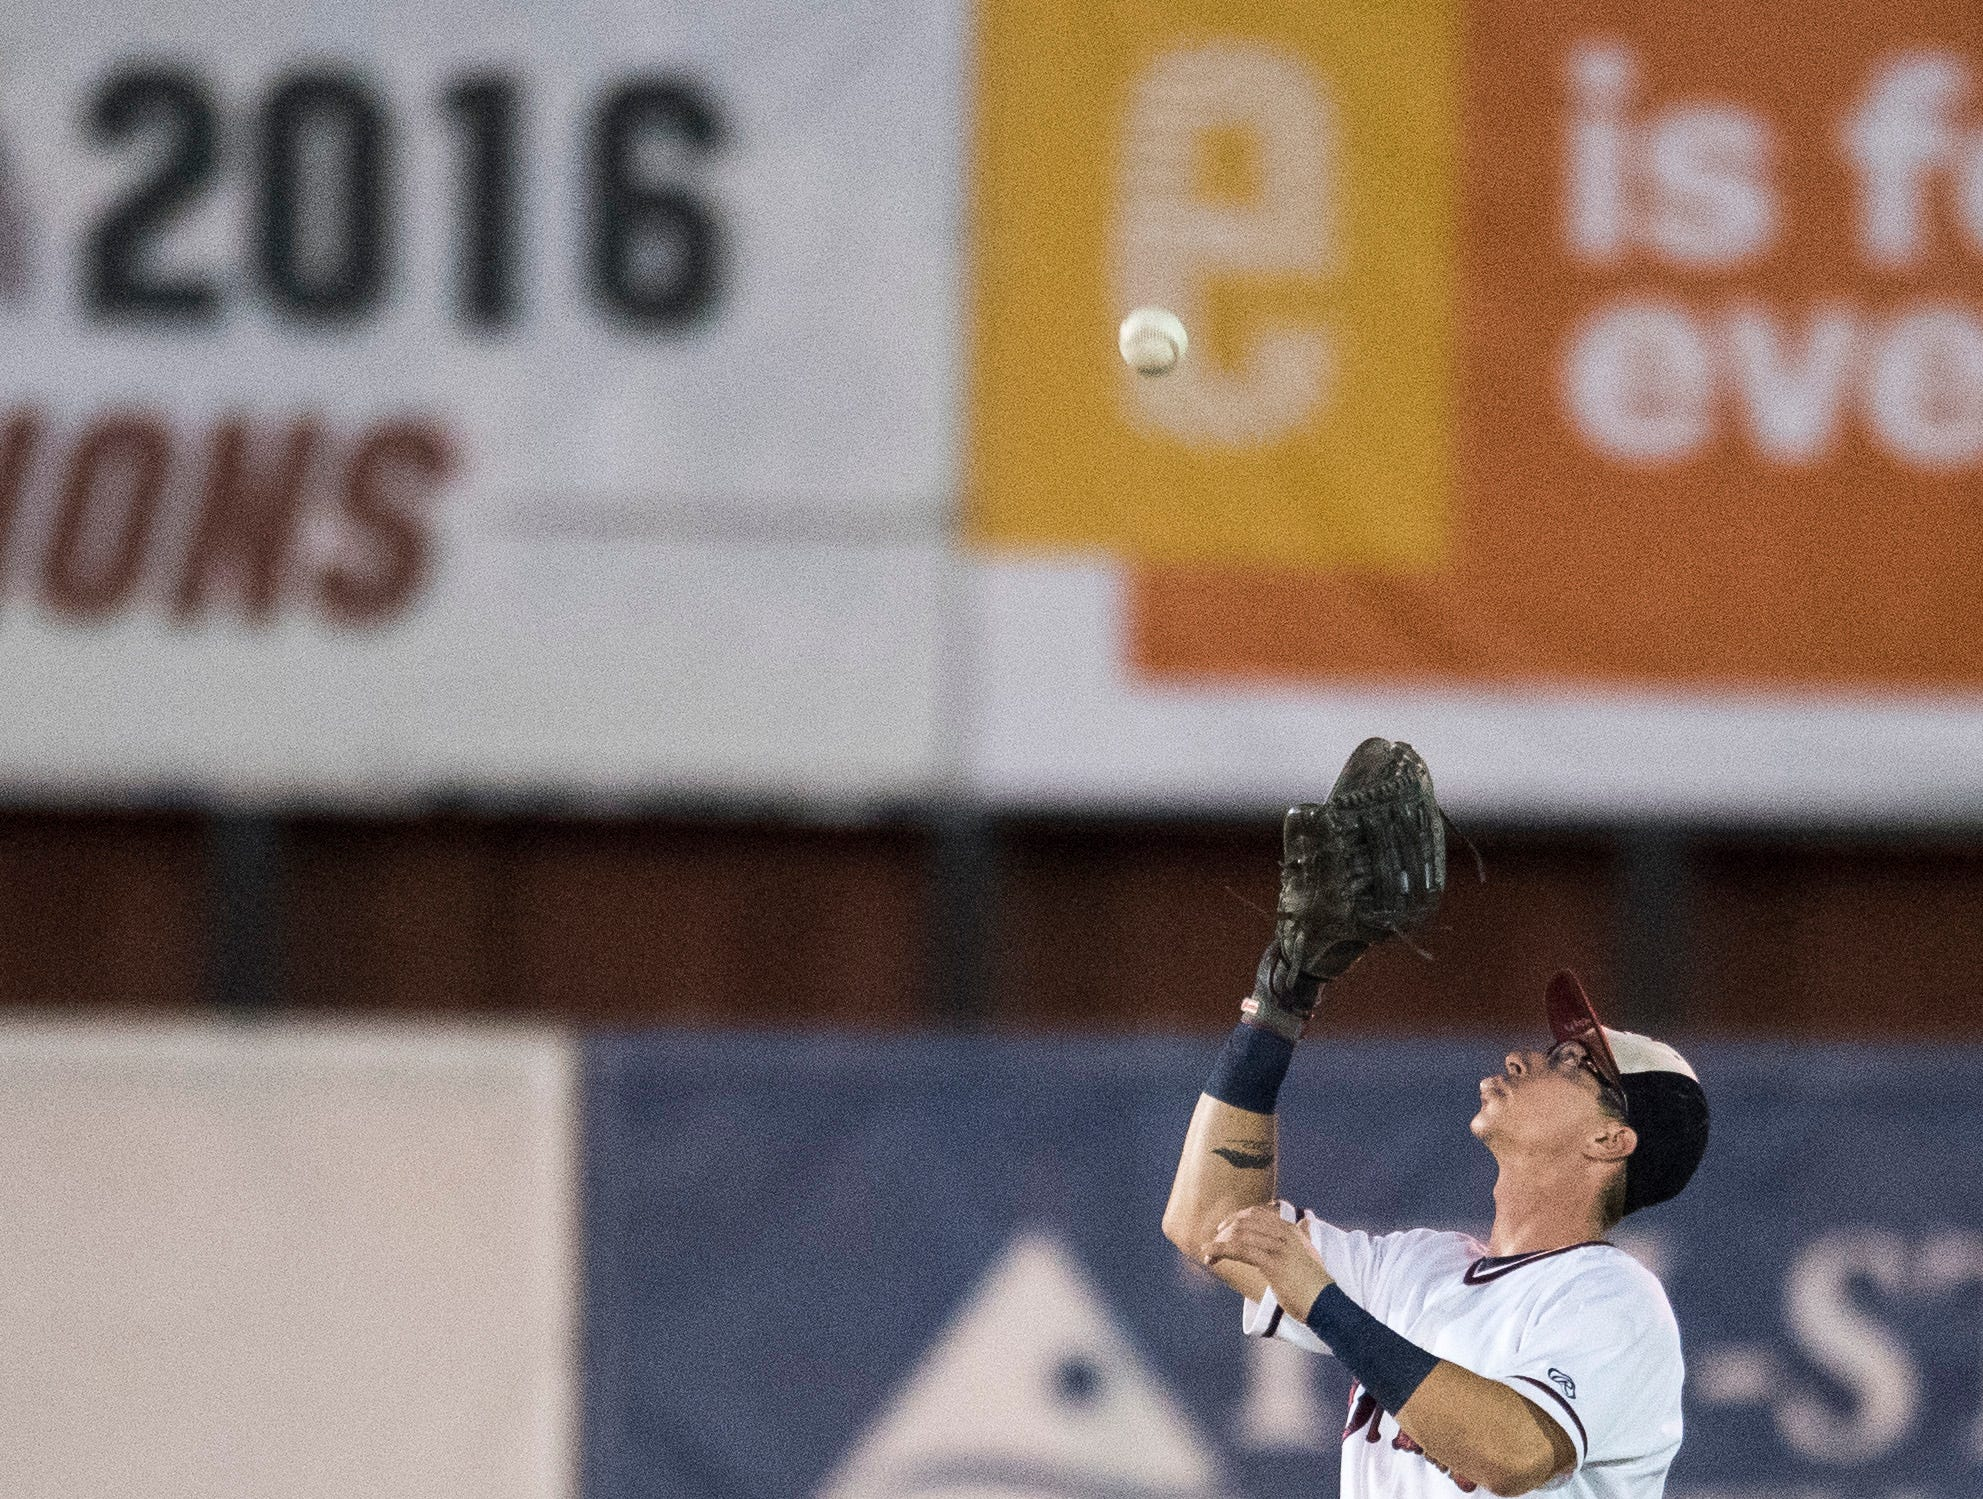 Evansville's Hunter Cullen (43) catches pop fly during game one of the Frontier League Division Series at Bosse Field against the Washington Wild Things Tuesday, September 4, 2018.